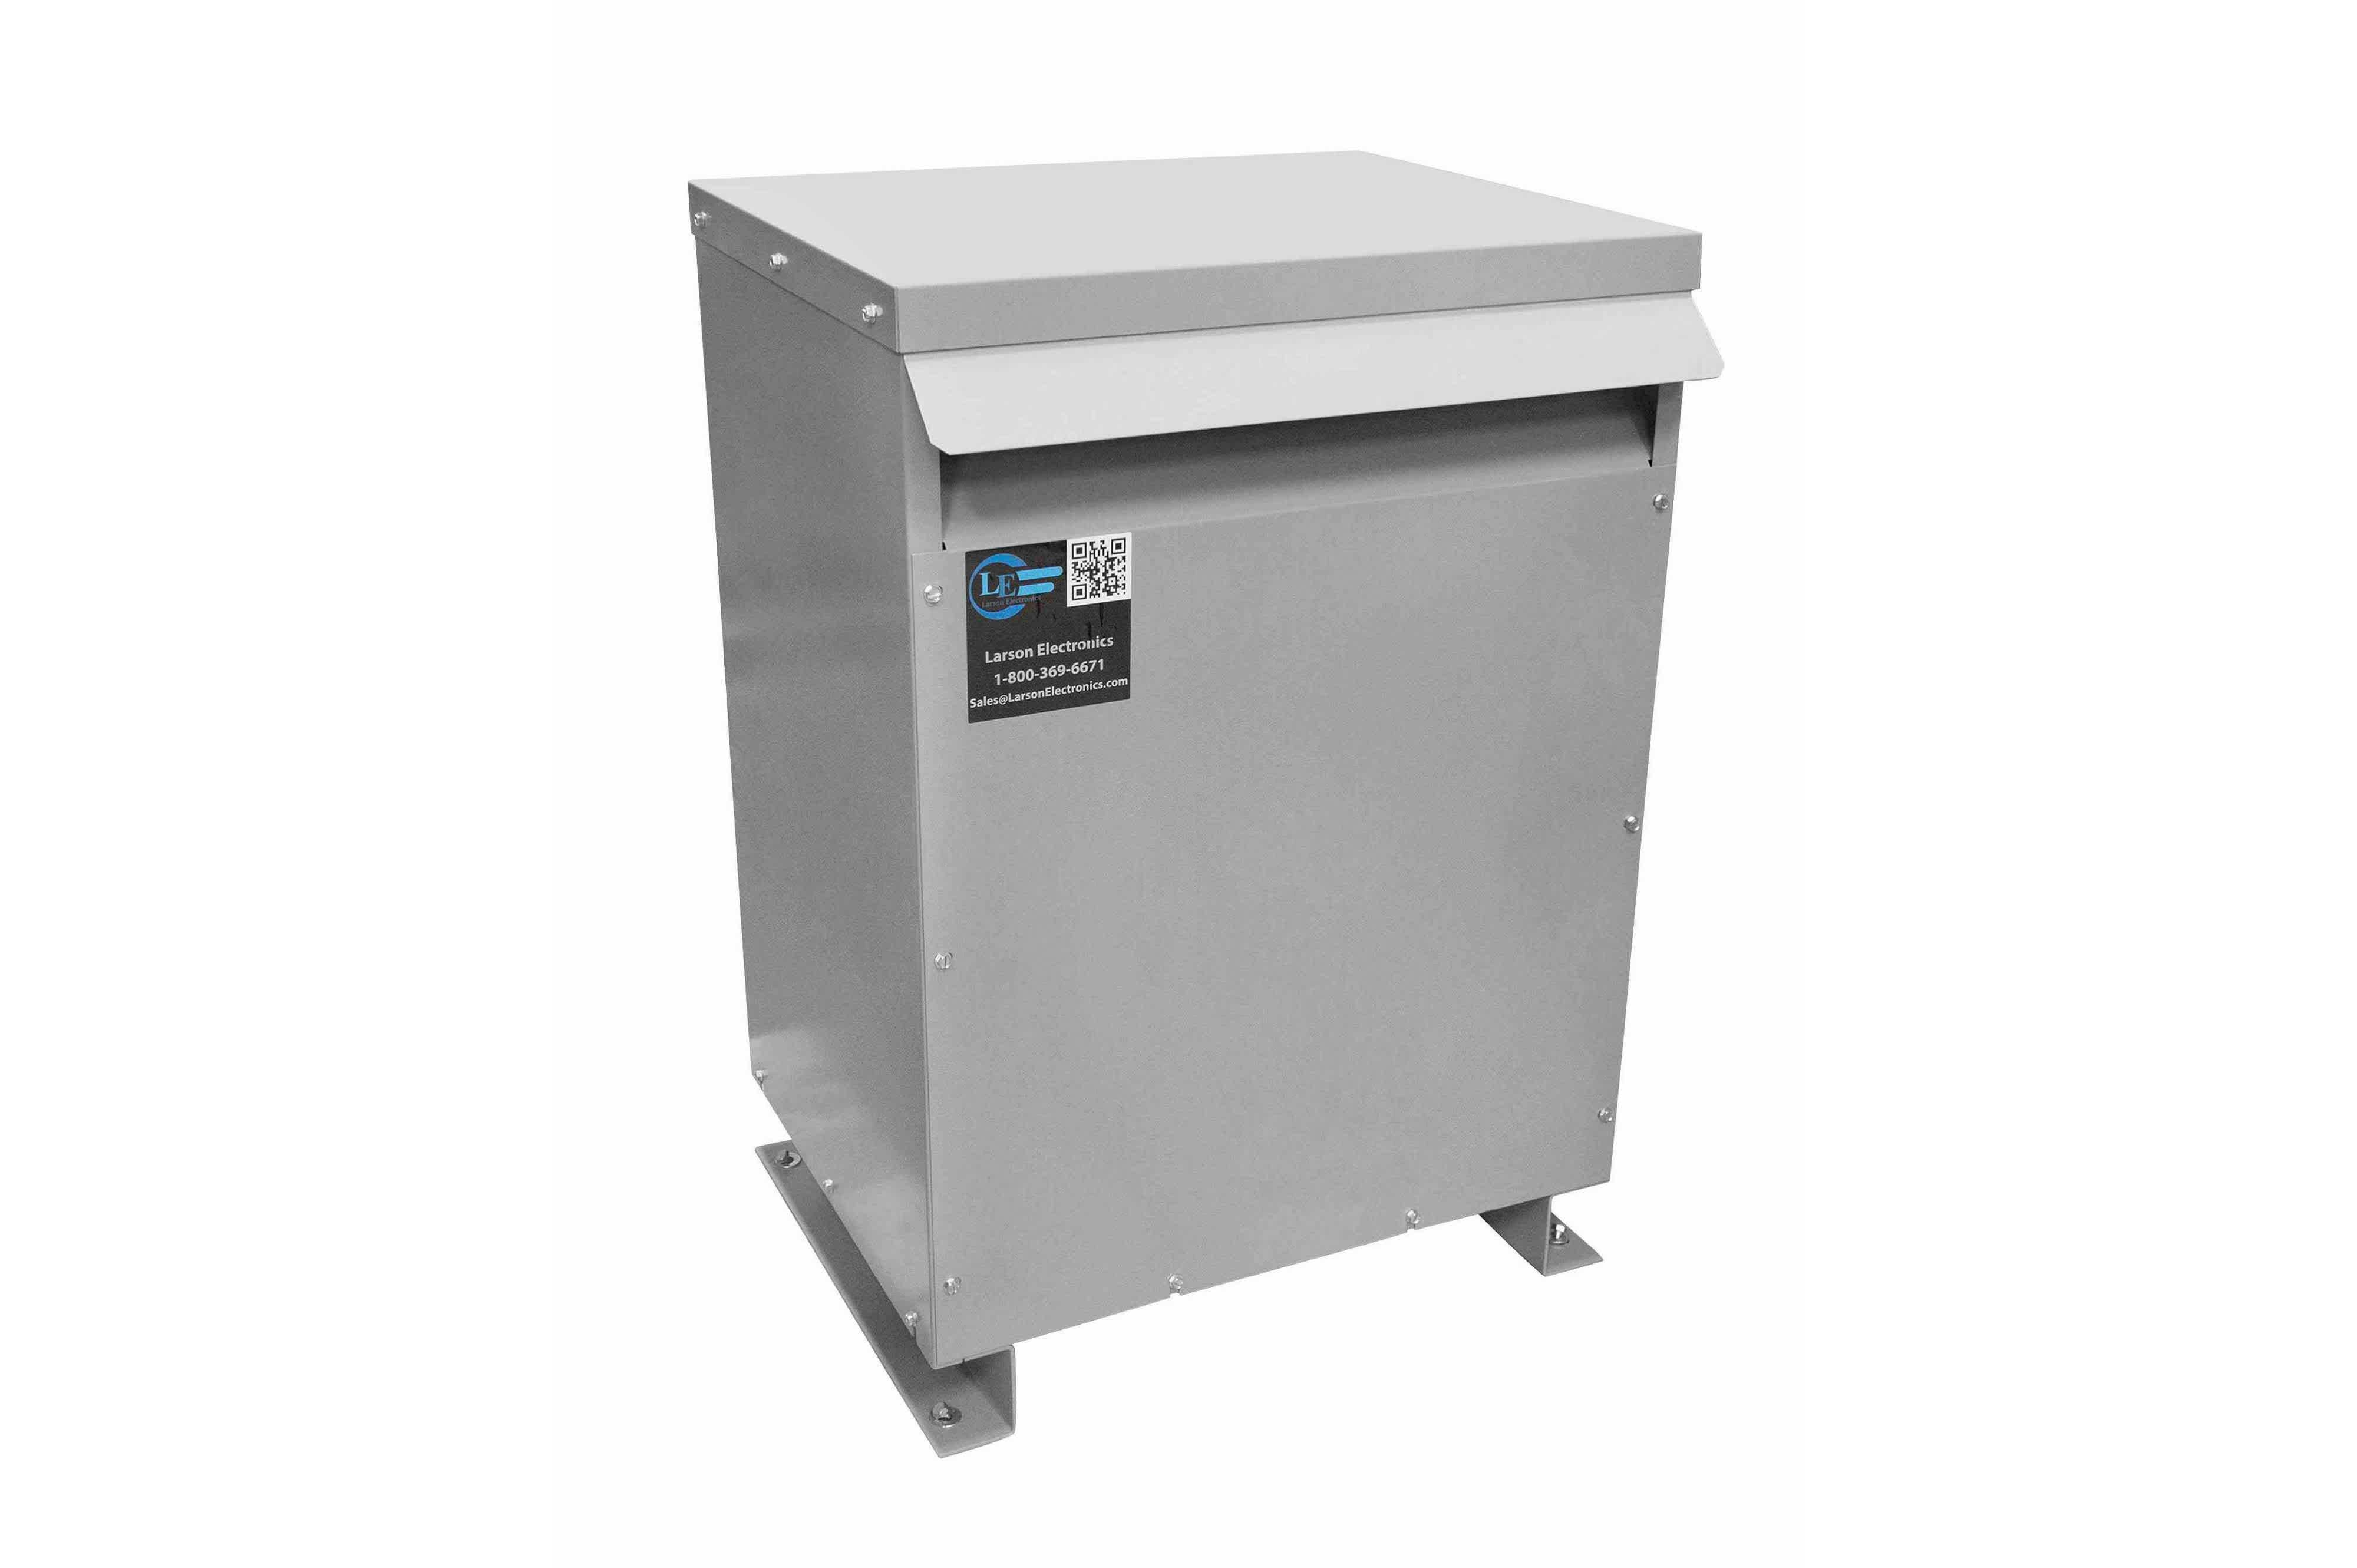 225 kVA 3PH Isolation Transformer, 600V Wye Primary, 240V/120 Delta Secondary, N3R, Ventilated, 60 Hz